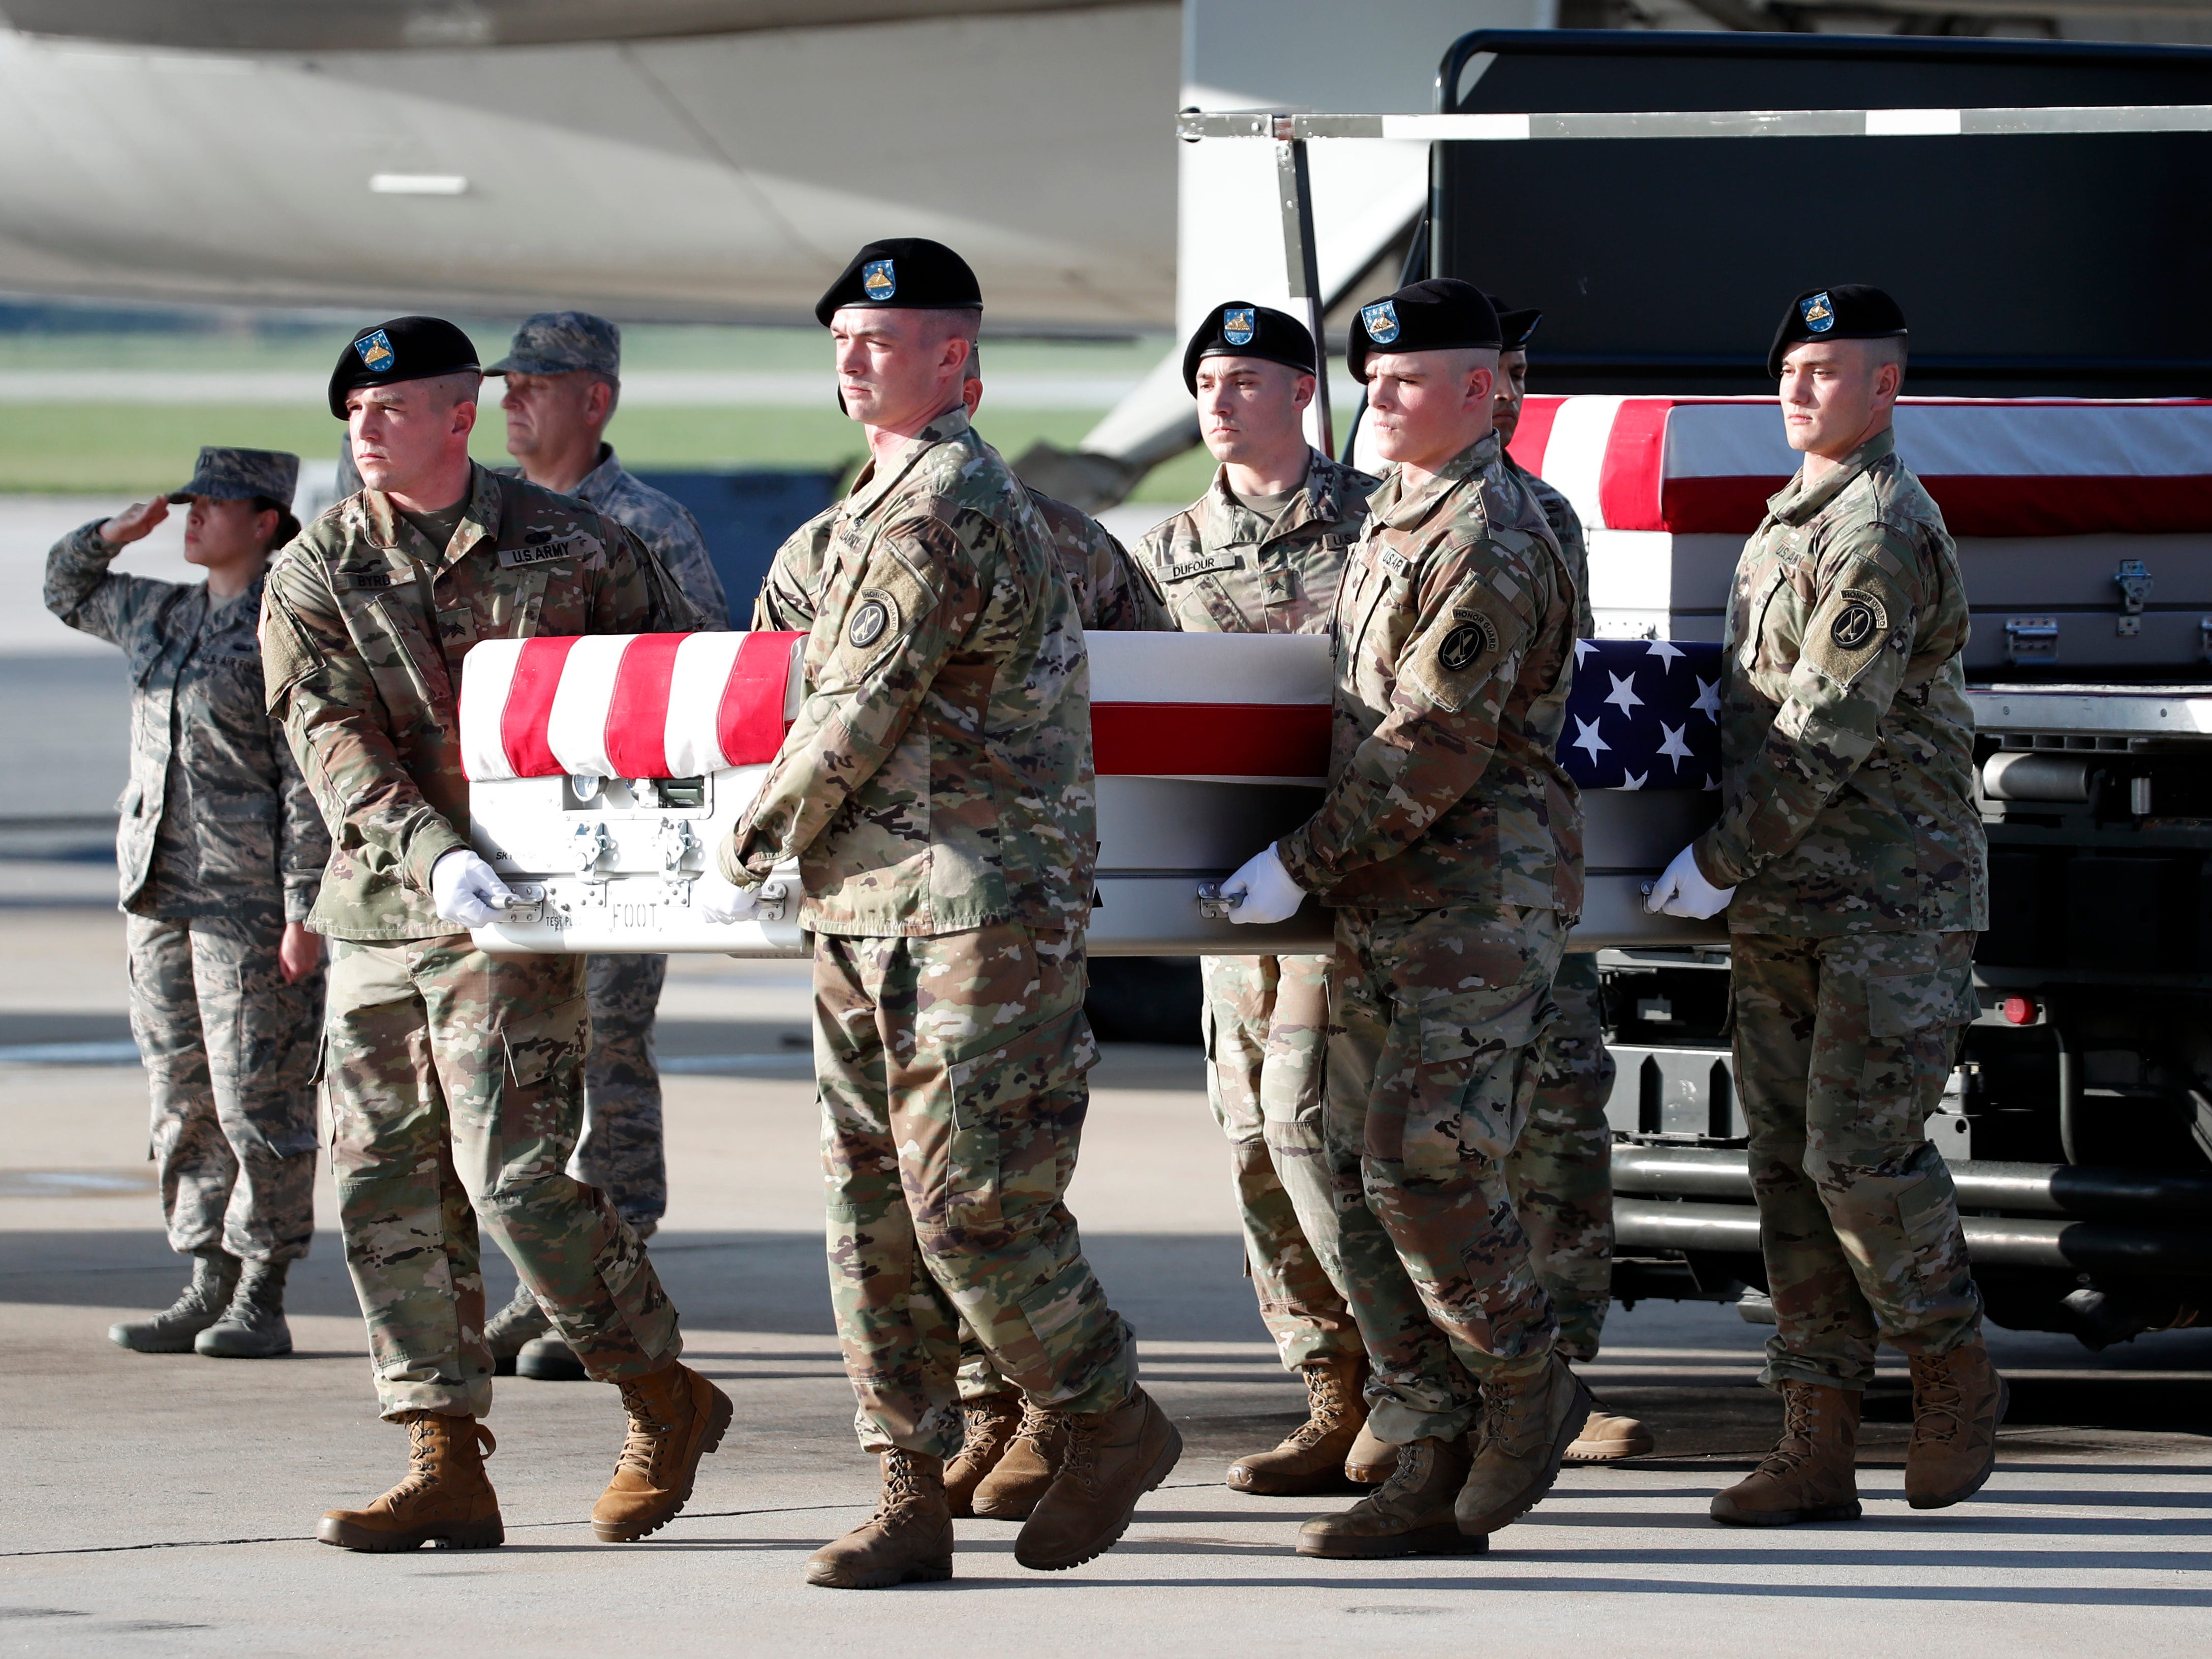 An Army carry team moves a transfer case containing the remains of U.S. Army Command Sgt. Maj. Timothy A. Bolyard, with the remains of U.S. Army Staff Sgt. Diobanjo S. San Agustin, at right, at Dover Air Force Base, Del.